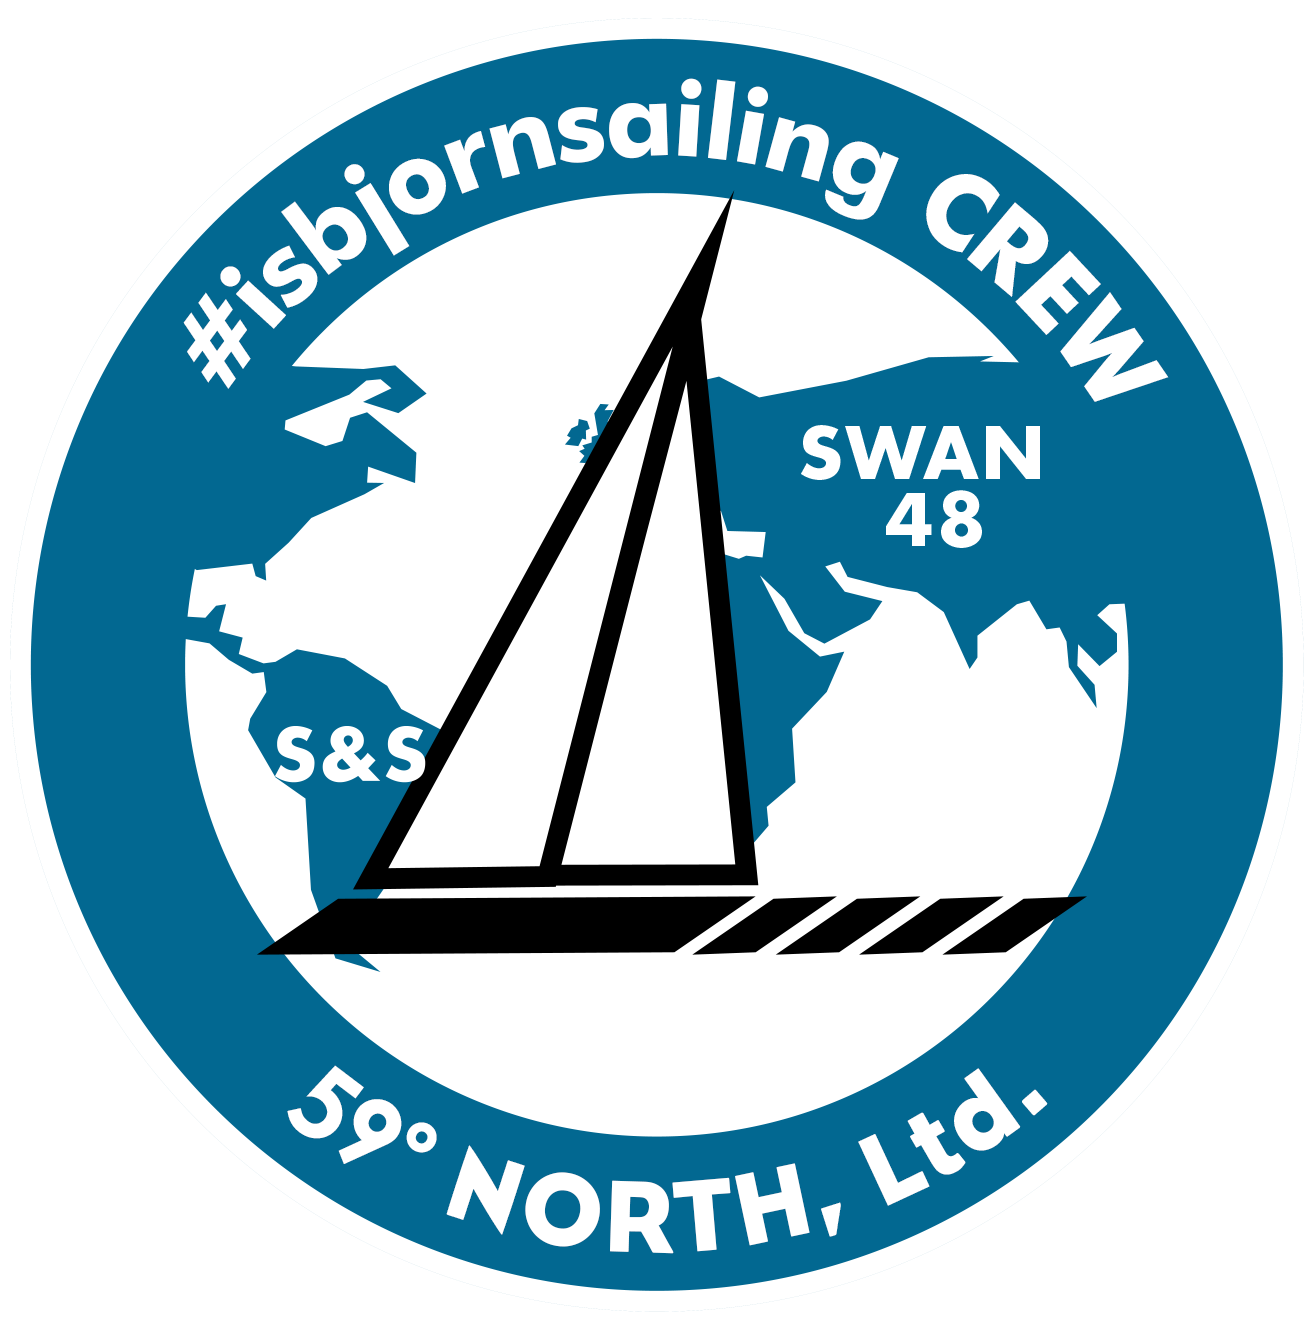 59 North Sailing